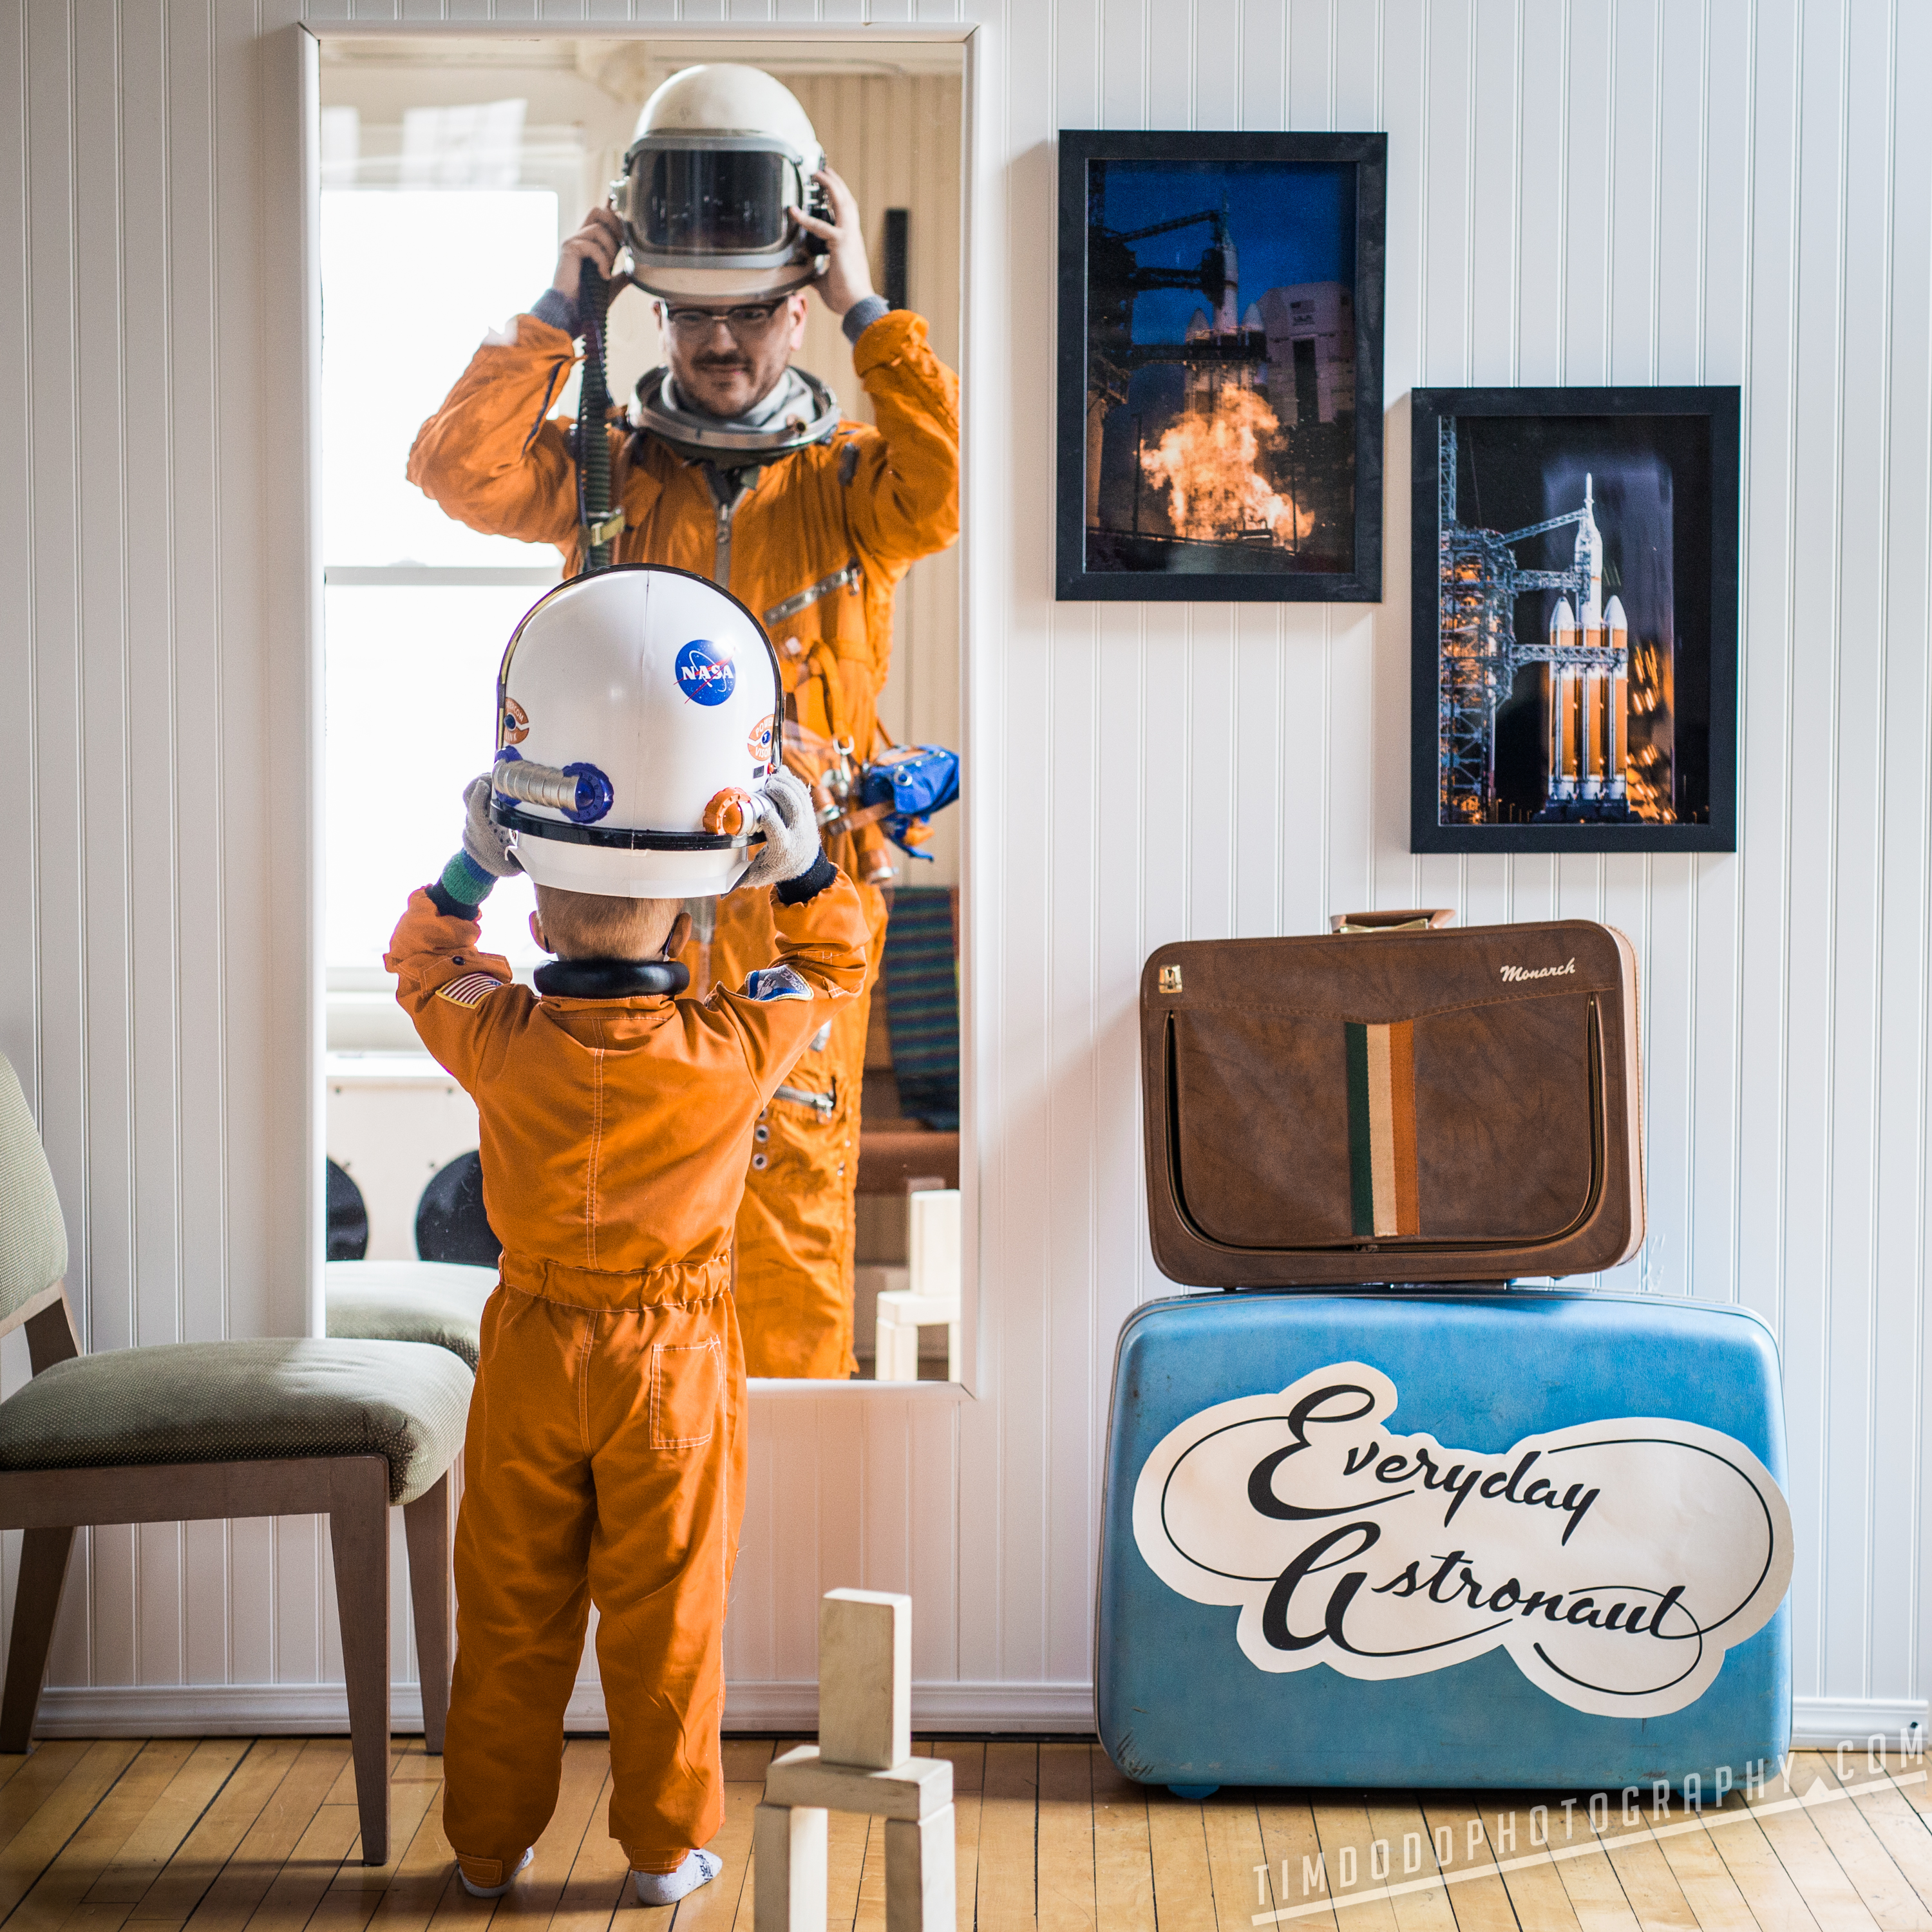 Everyday Astronaut mirror reflection I always knew what I wanted to be instagram inspiration by Tim Dodd Photography Everyday Astronaut Cosmonaut Space Suit little kid